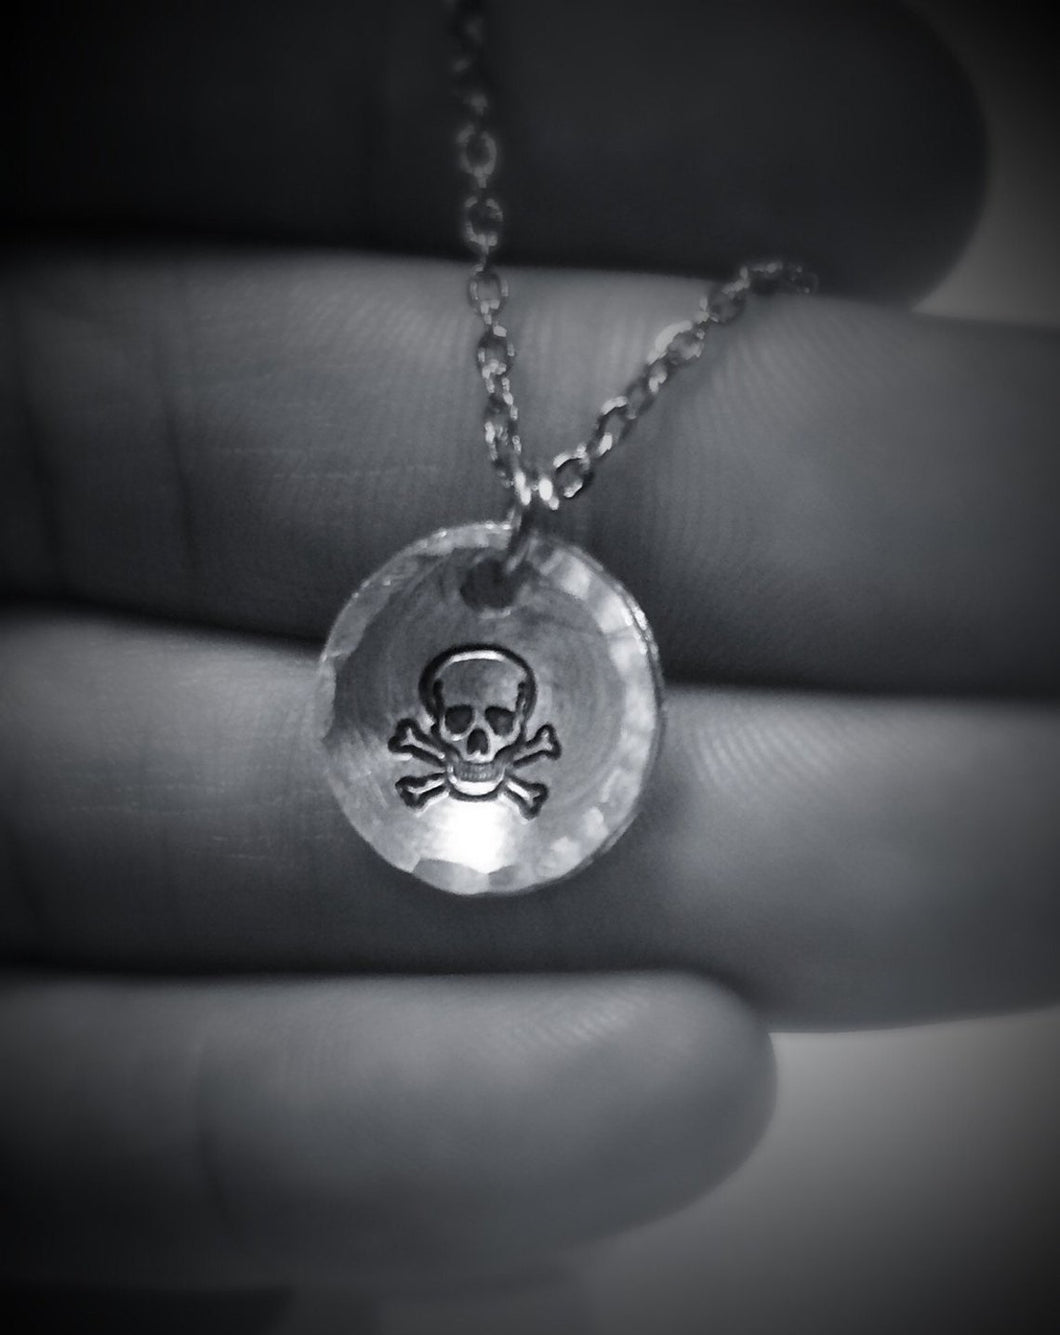 Pirate Skull and Crossbones Necklace